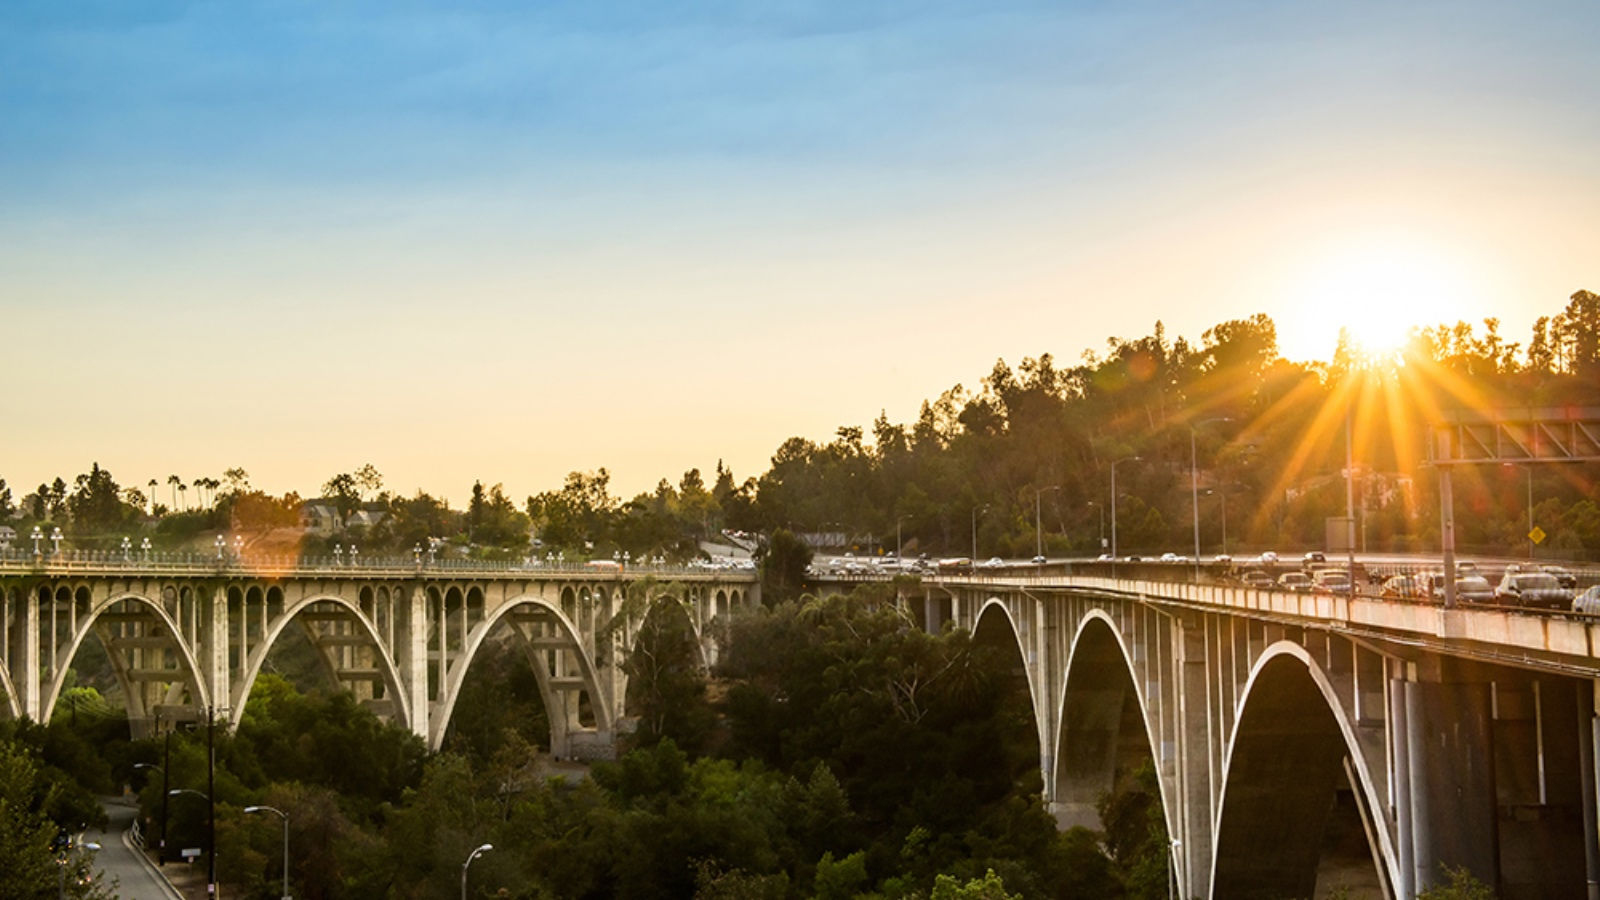 Things to do in Pasadena - Colorado Street Bridge